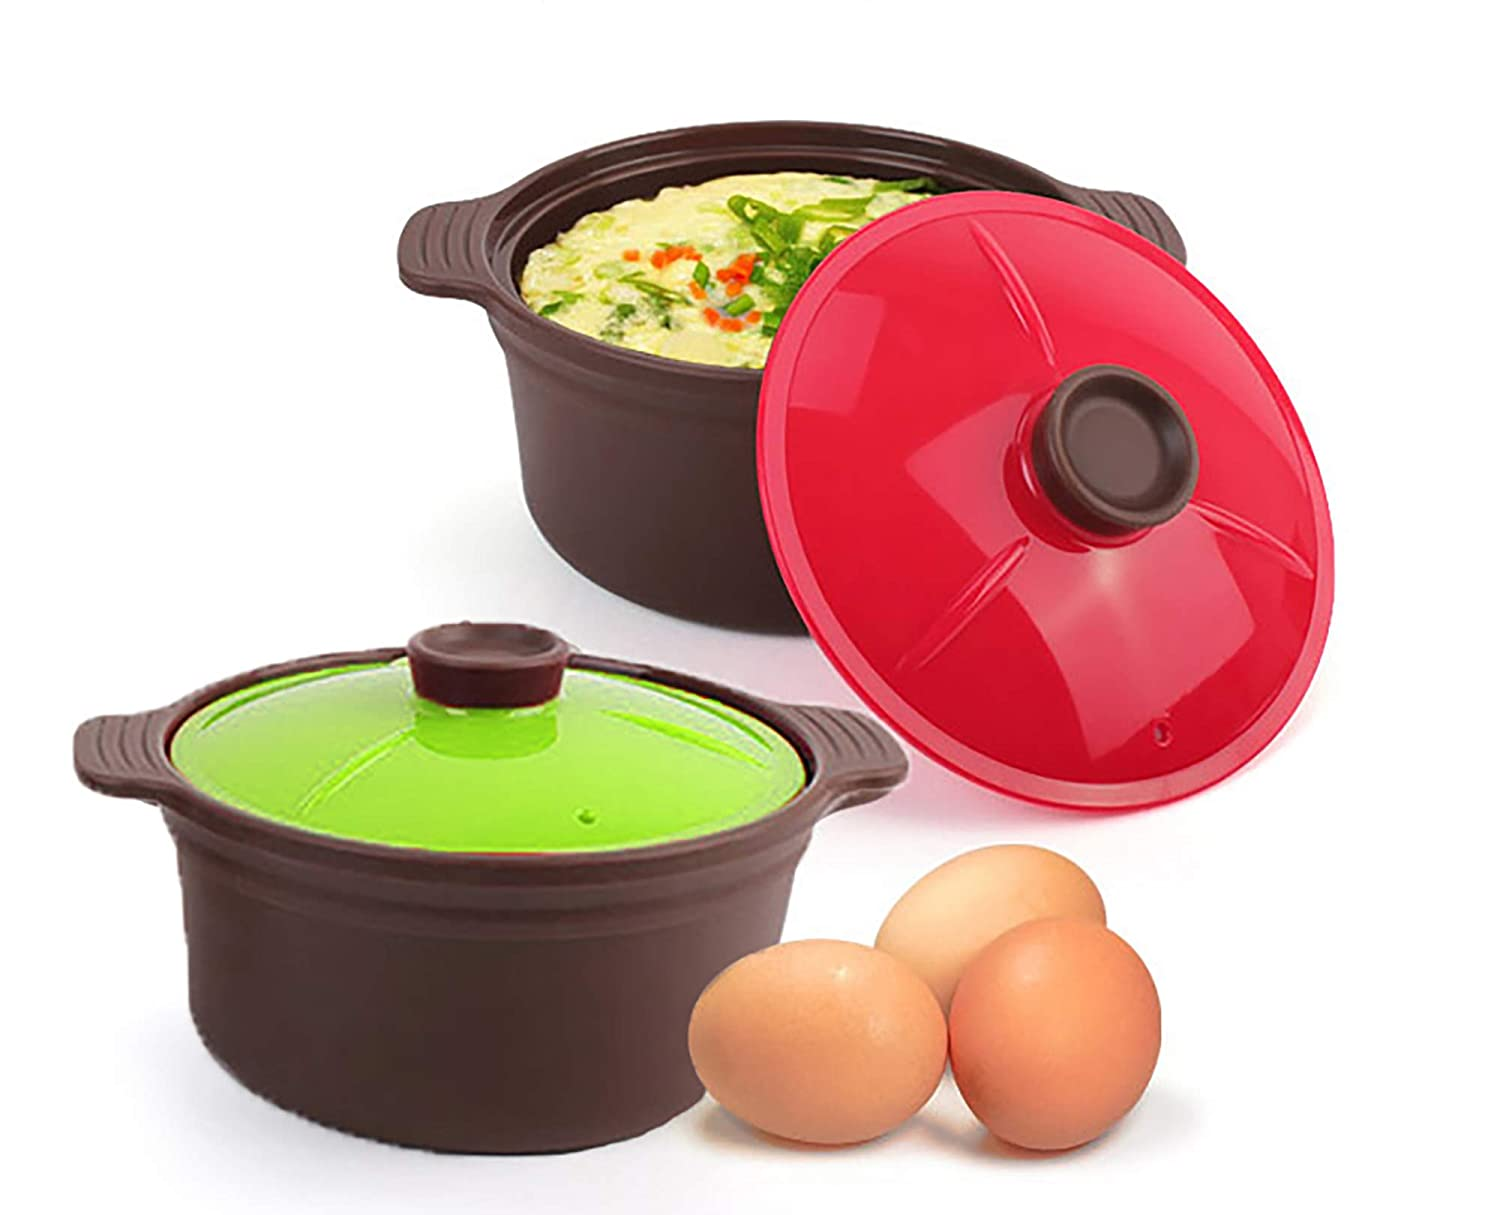 Set of 2 Silicone Microwave Oven Steamer Cooker Container with Lid, 20.3 Fl Oz (Dark Brown Body, Red and Green Lids) – Heat Resistant Up to 482 F, BPA Free, Quick and Convenient Healthy Cooking Vessel, Great for Eggs, Vegetables, Leftovers, Rice, Instant Noodles – Made in Korea